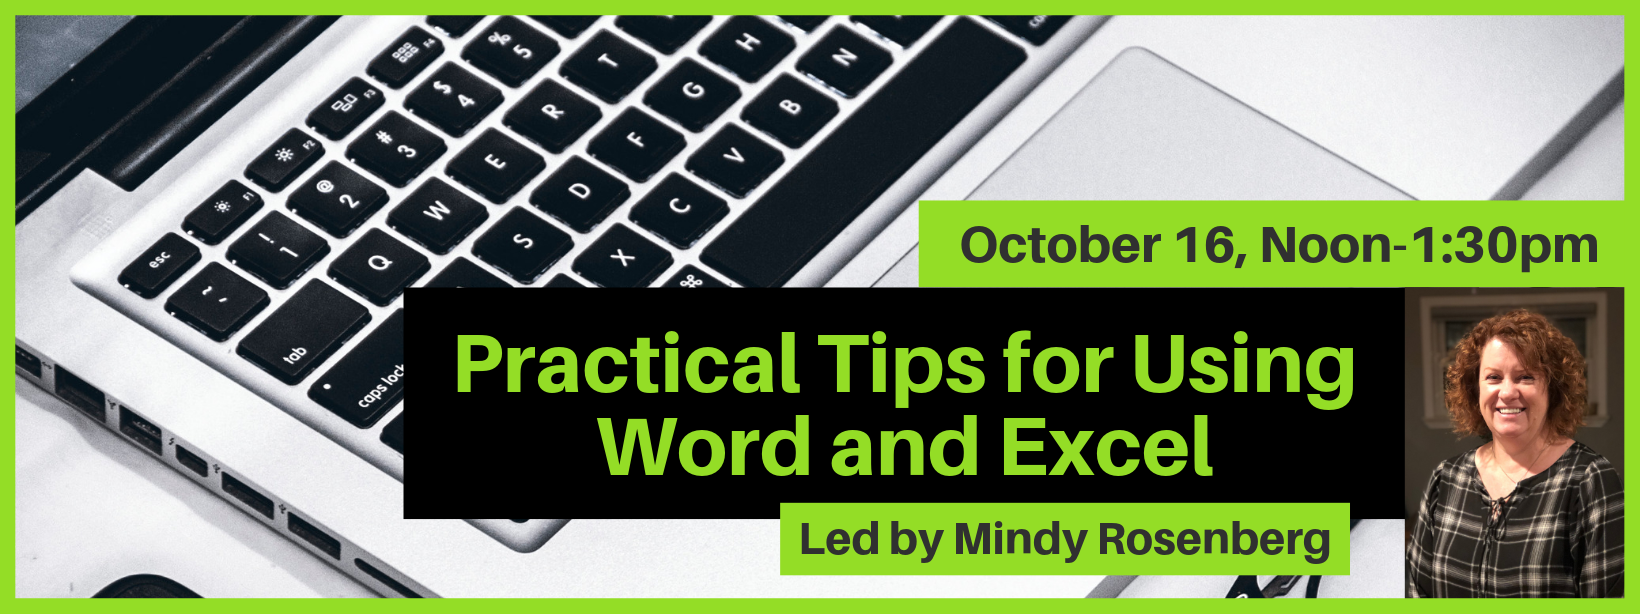 Practical Tips for Using Word and Excel